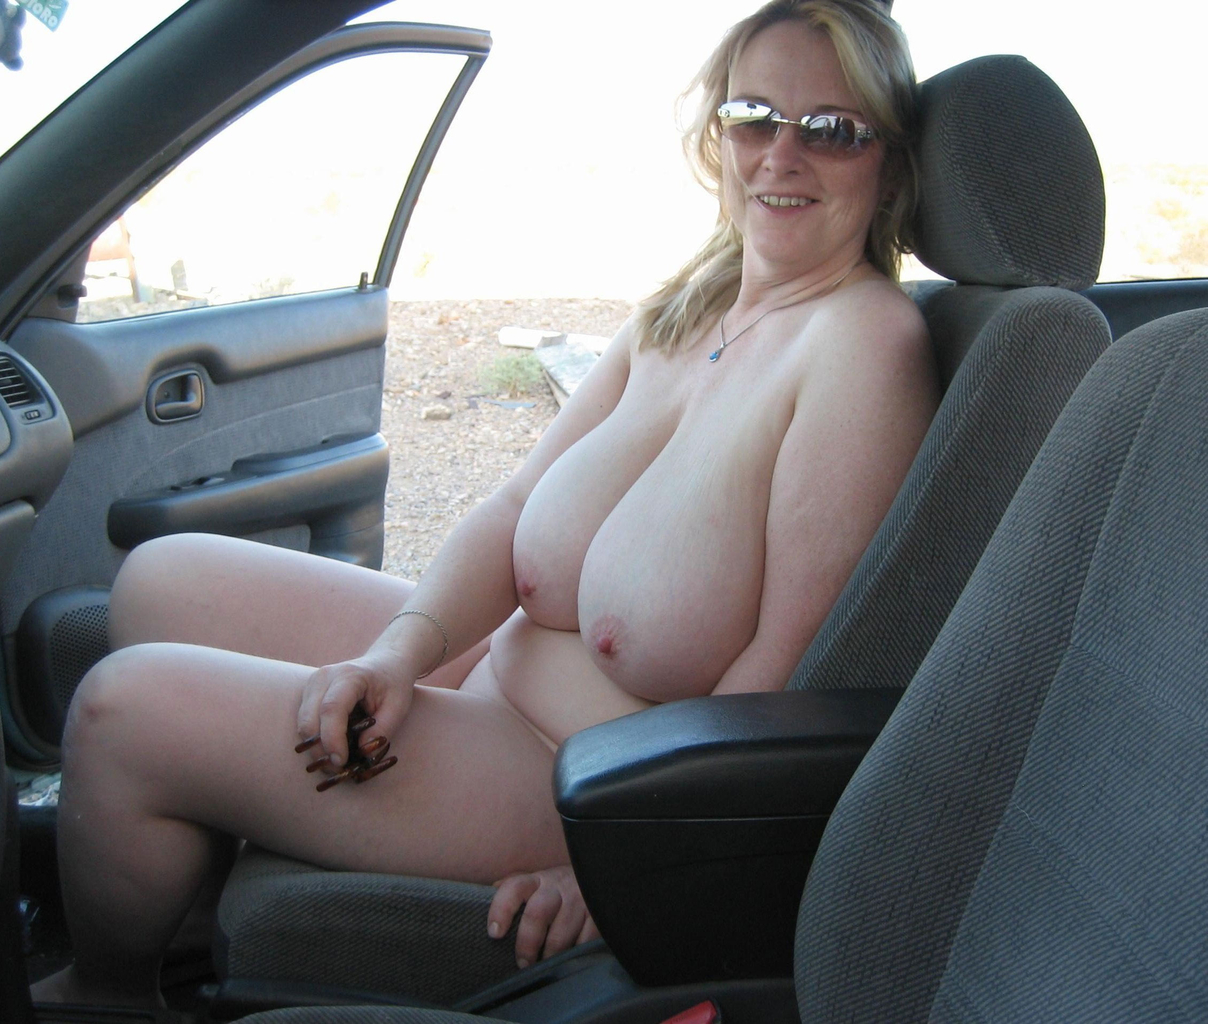 Tit in car